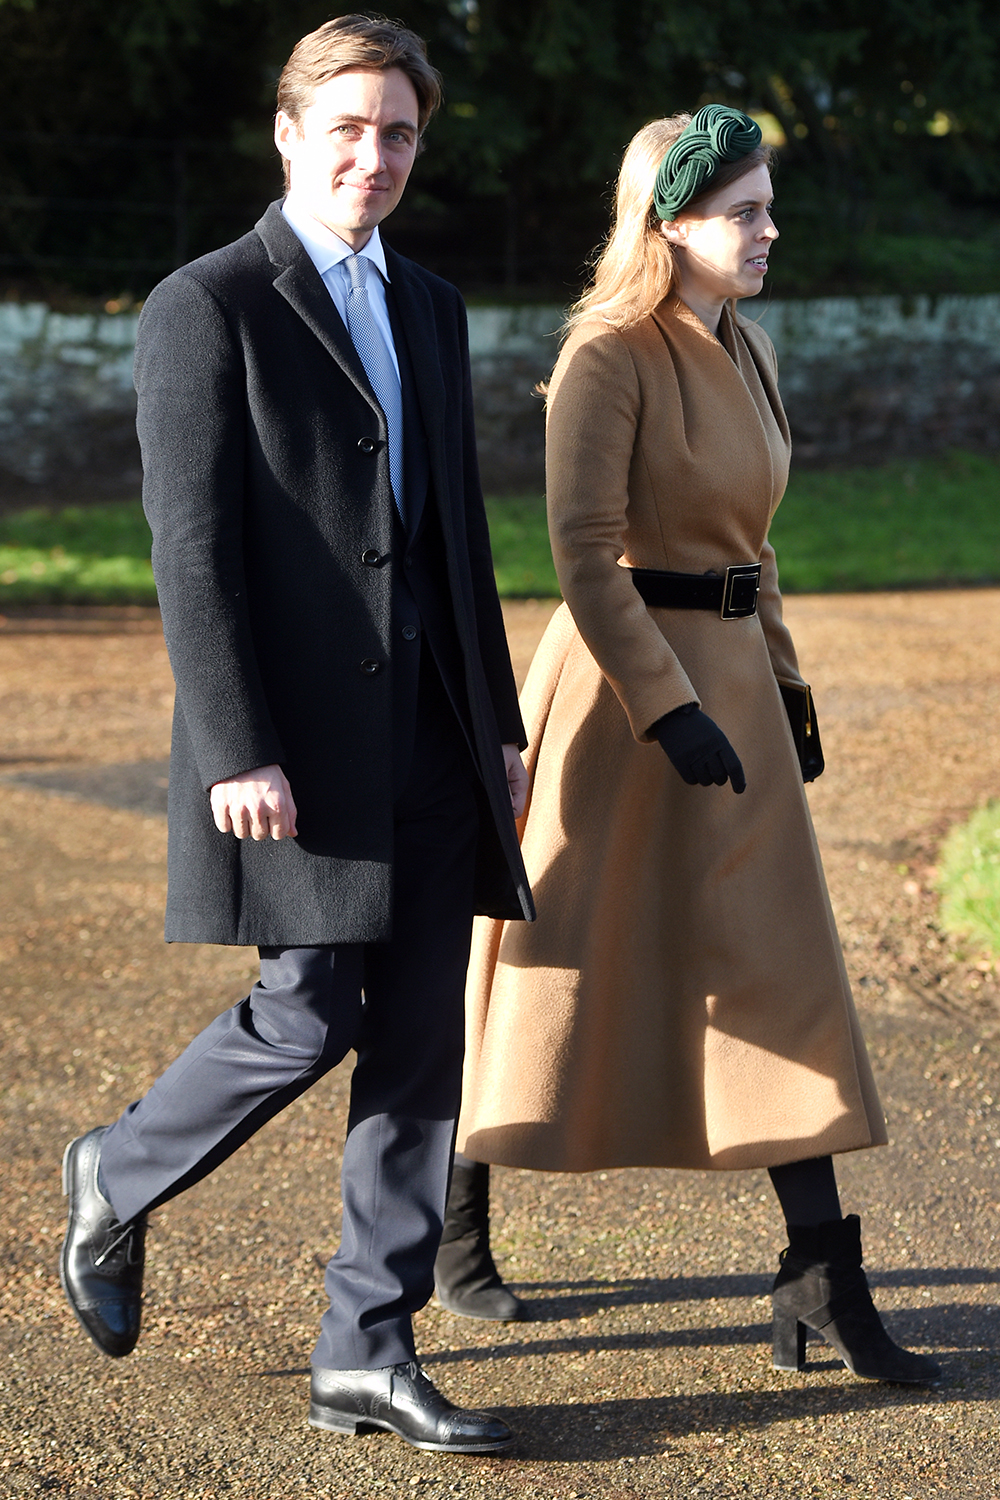 Edoardo Mapelli Mozzi and Princess Beatrice after attending the Christmas Day morning church service at St Mary Magdalene Church in Sandringham, Norfolk. (Photo by Joe Giddens/PA Images via Getty Images)